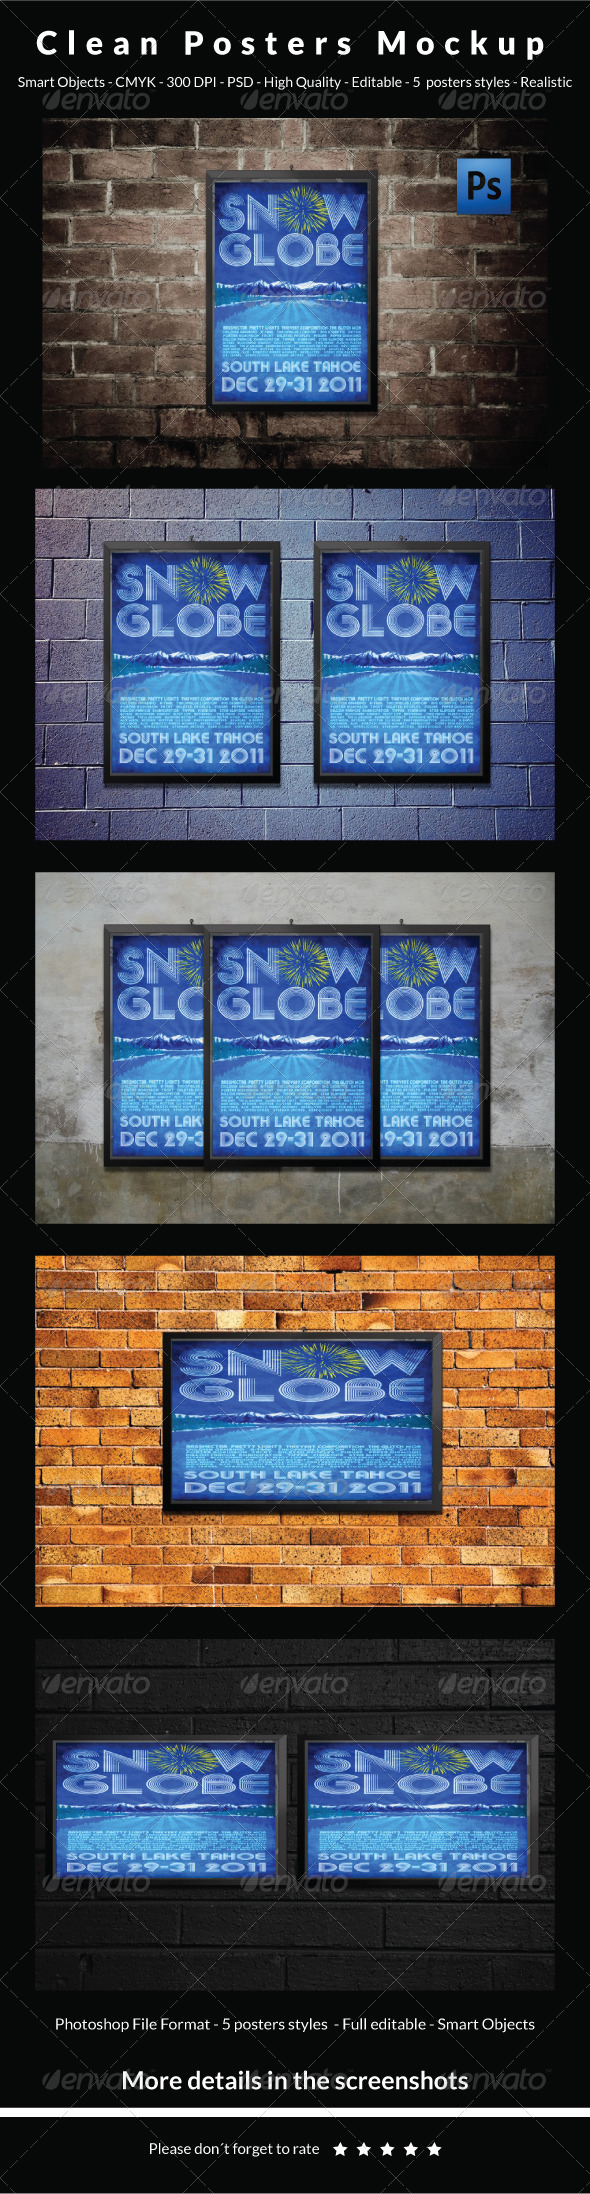 GraphicRiver Clean Posters Mockup 5959749